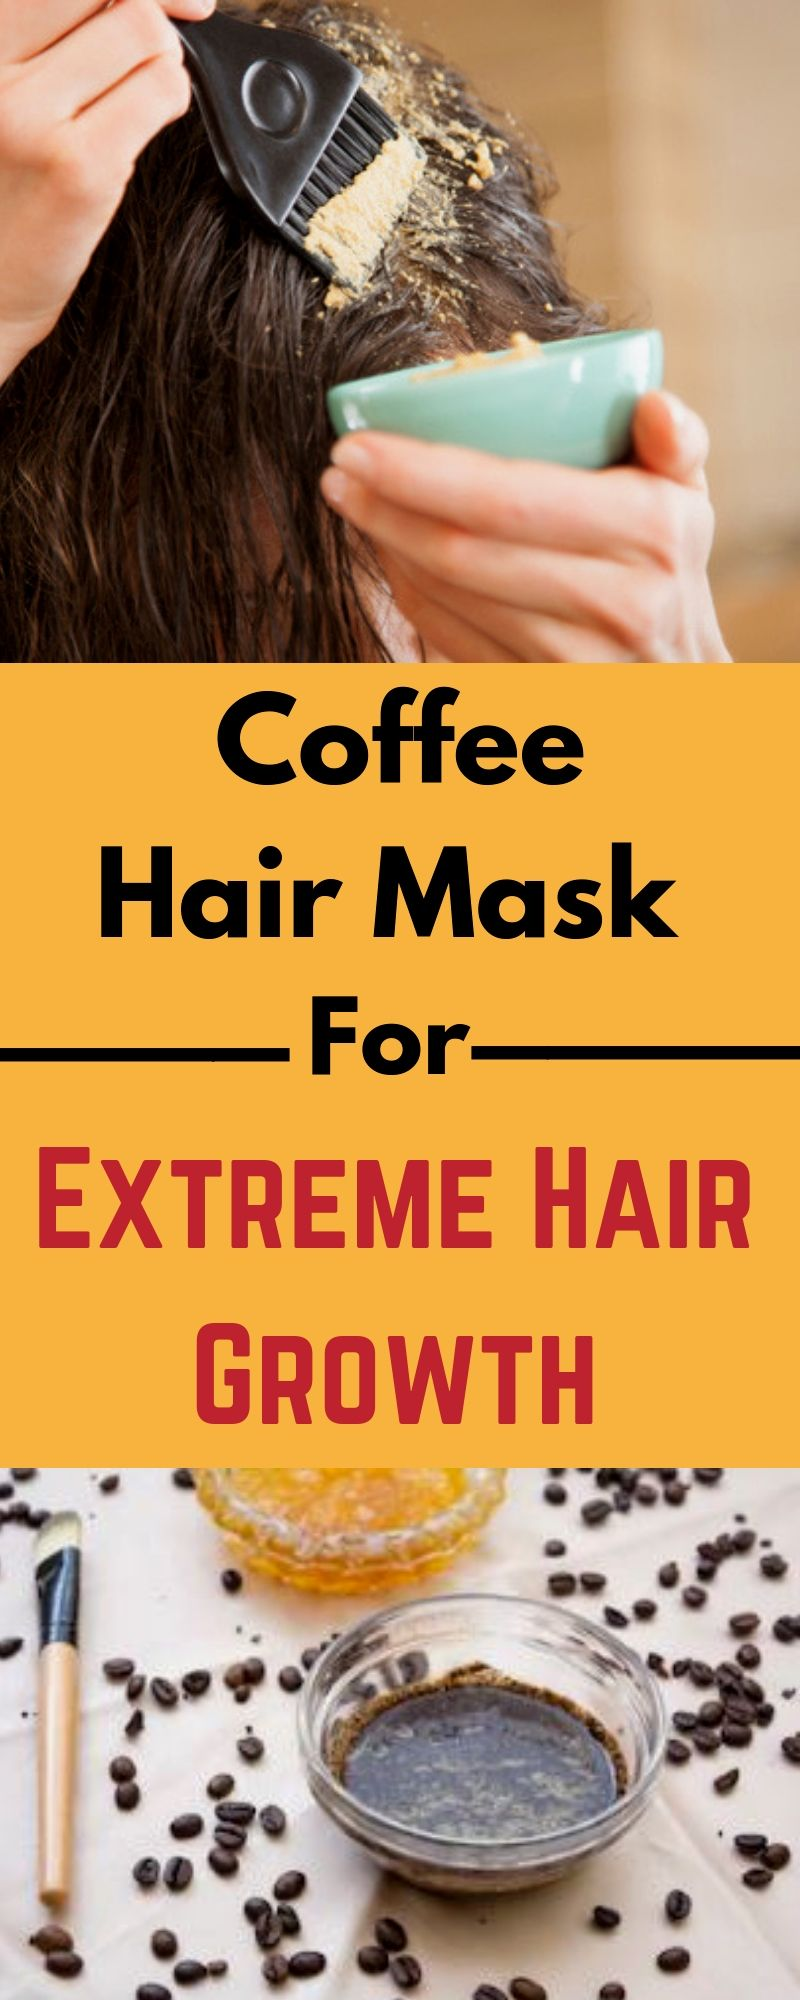 Hair Growth Supplement} and hair masks for curly hair growth #hairstyles #water #how #to #natural #rice #long #4